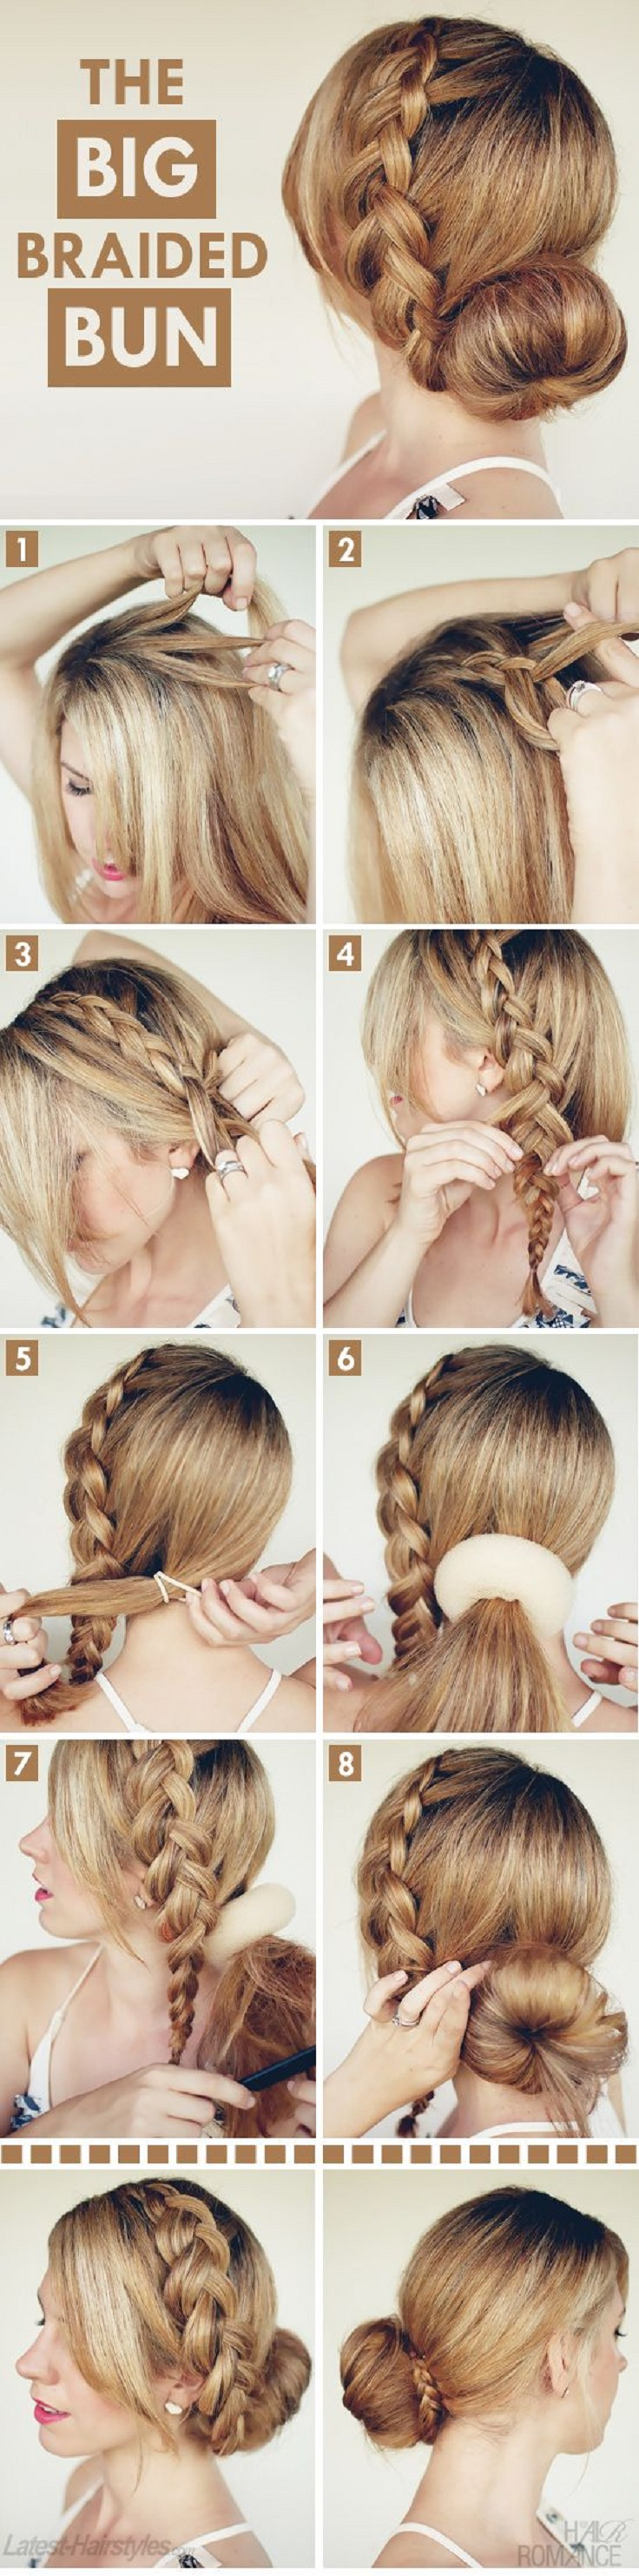 Adorable Hairstyle Tutorials: The Big Braided Bun